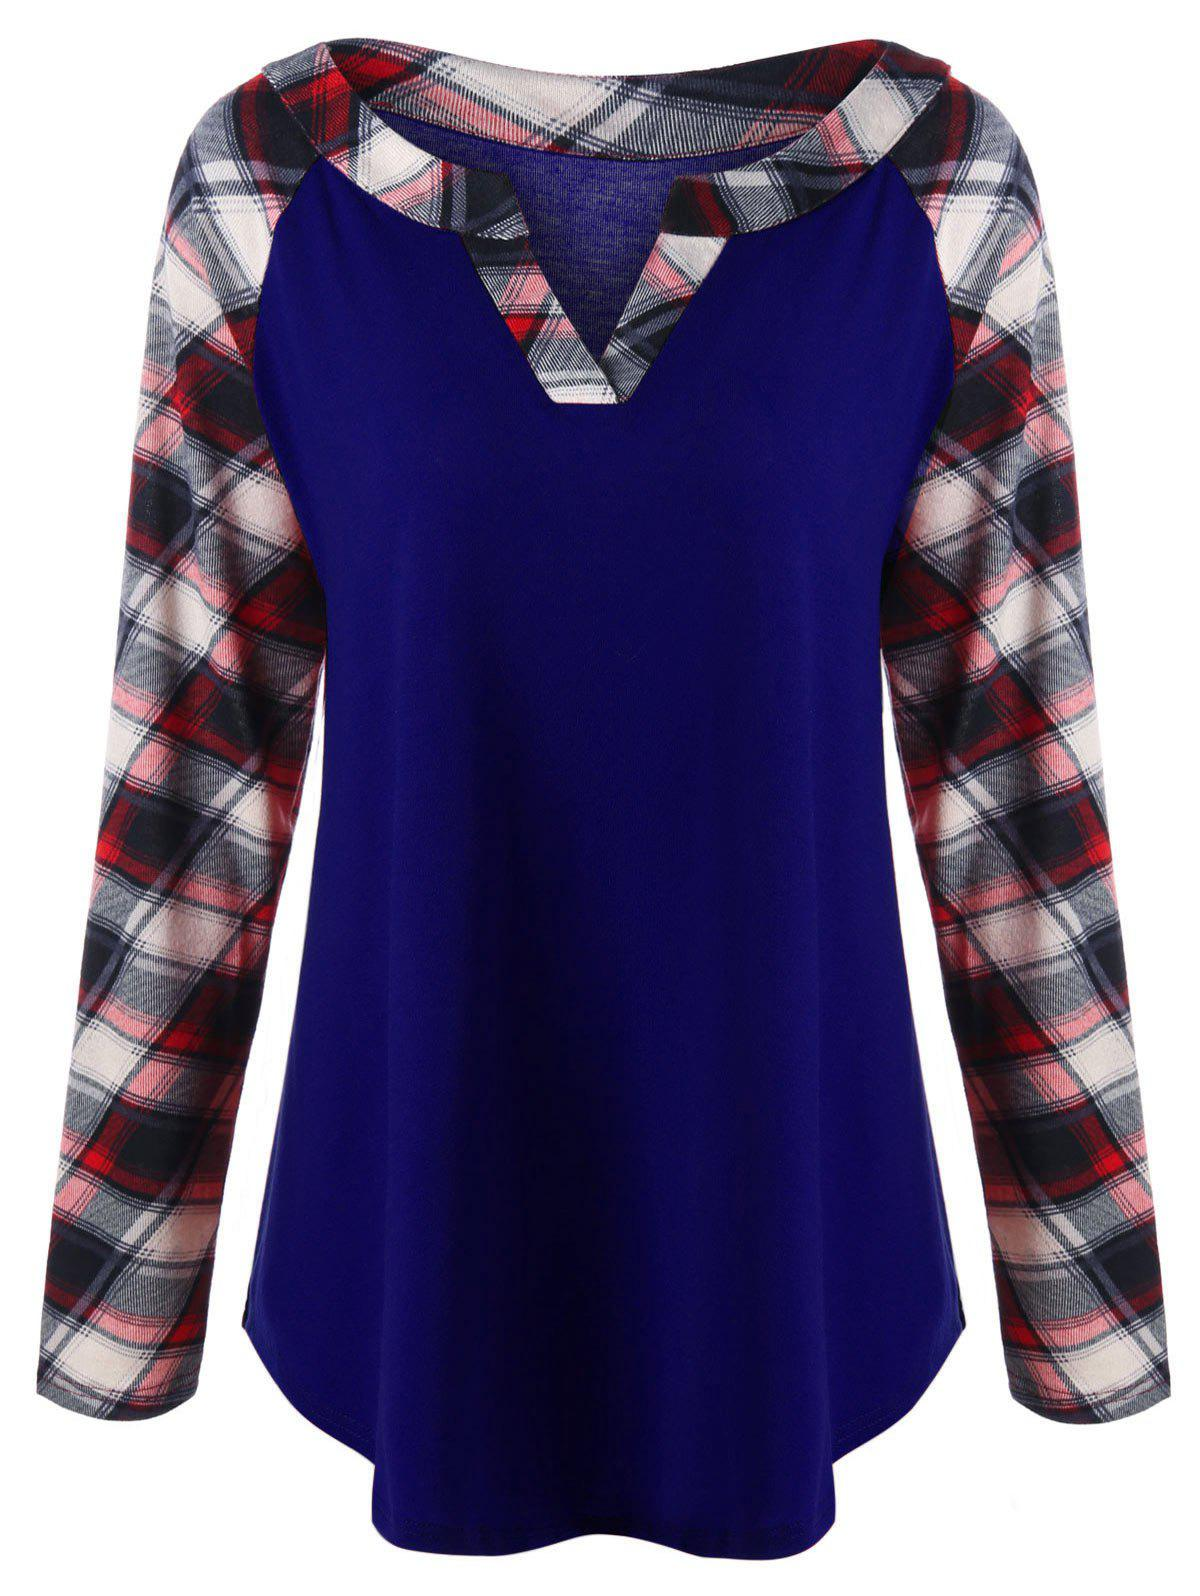 Plus Size Raglan Sleeve Plaid T-shirtWOMEN<br><br>Size: XL; Color: BLUE; Material: Rayon,Spandex; Shirt Length: Long; Sleeve Length: Full; Collar: V-Neck; Style: Casual; Season: Fall,Spring; Pattern Type: Plaid; Weight: 0.3000kg; Package Contents: 1 x Top;